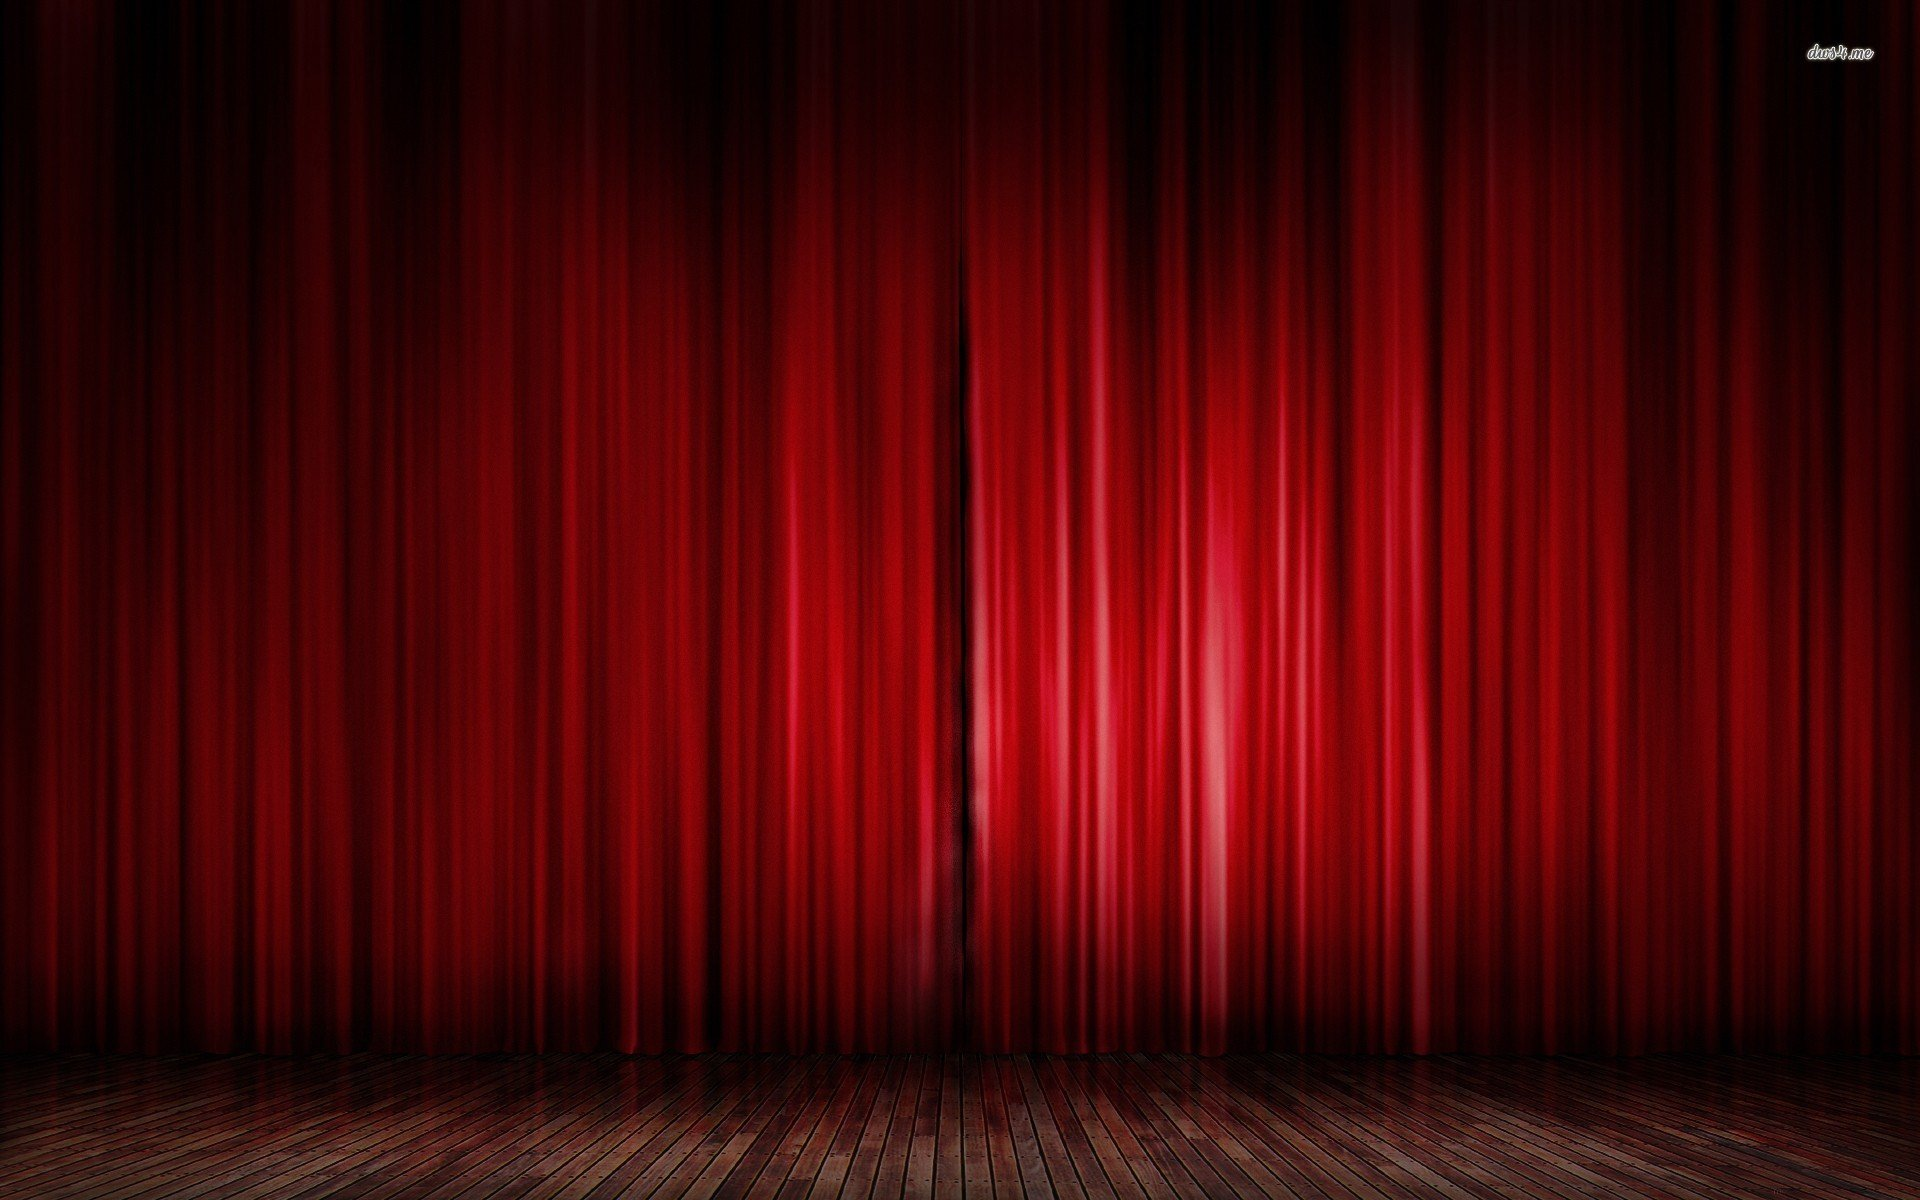 Theatre curtains png - Theatre Curtains Background Stage Curtains Png Wallpaper And Curtains Wallpapers Hd Fine